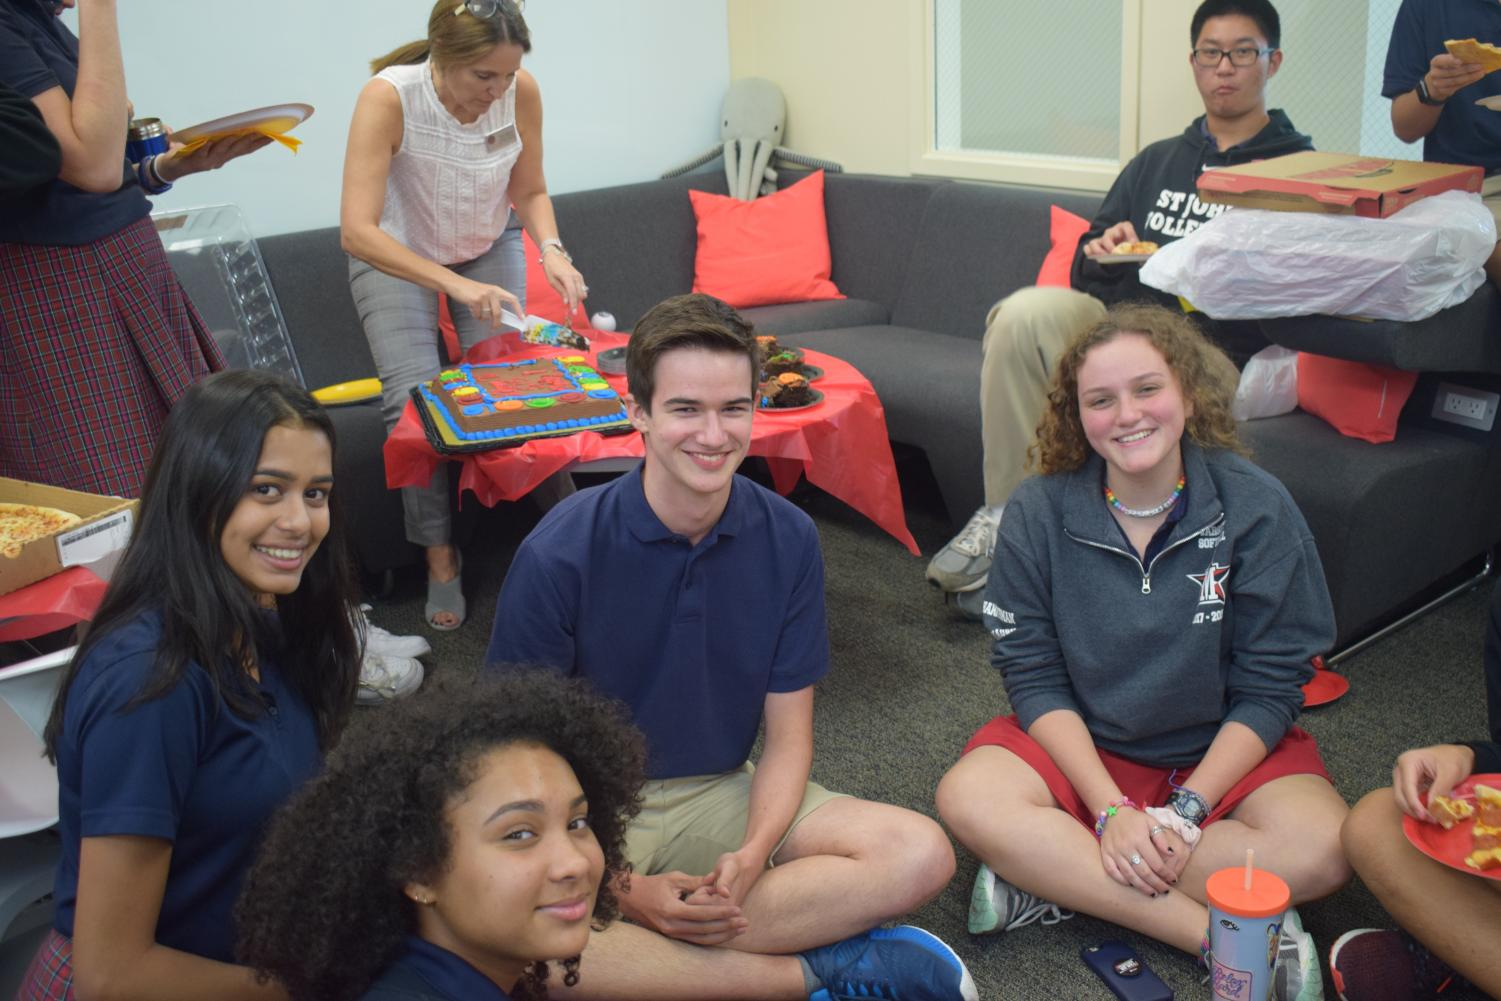 Wiesinger's classmates throw him a welcome party.